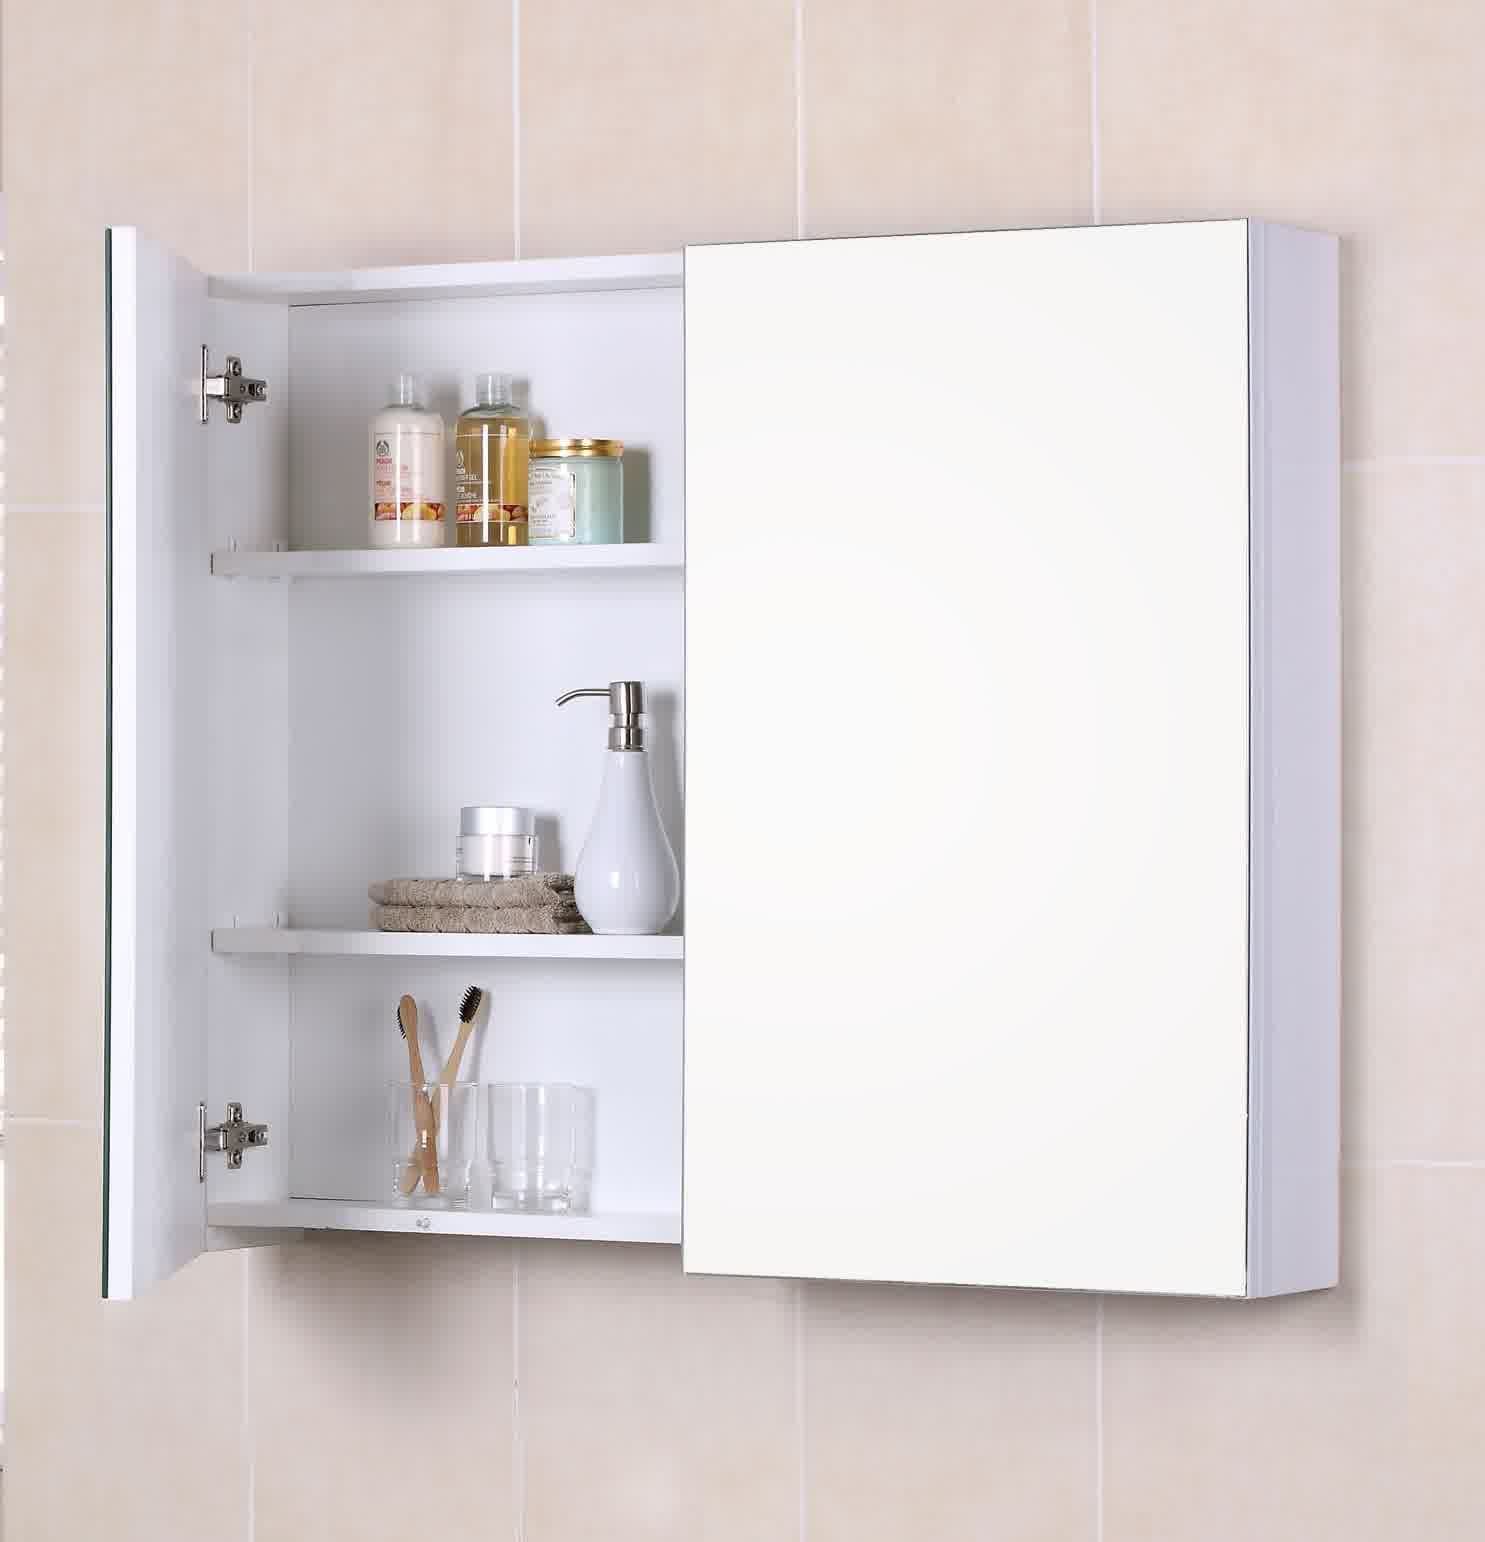 100 Small Corner Wall Cabinet For Bathroom  Best Interior Paint Stunning Small Corner Wall Cabinet For Bathroom Inspiration